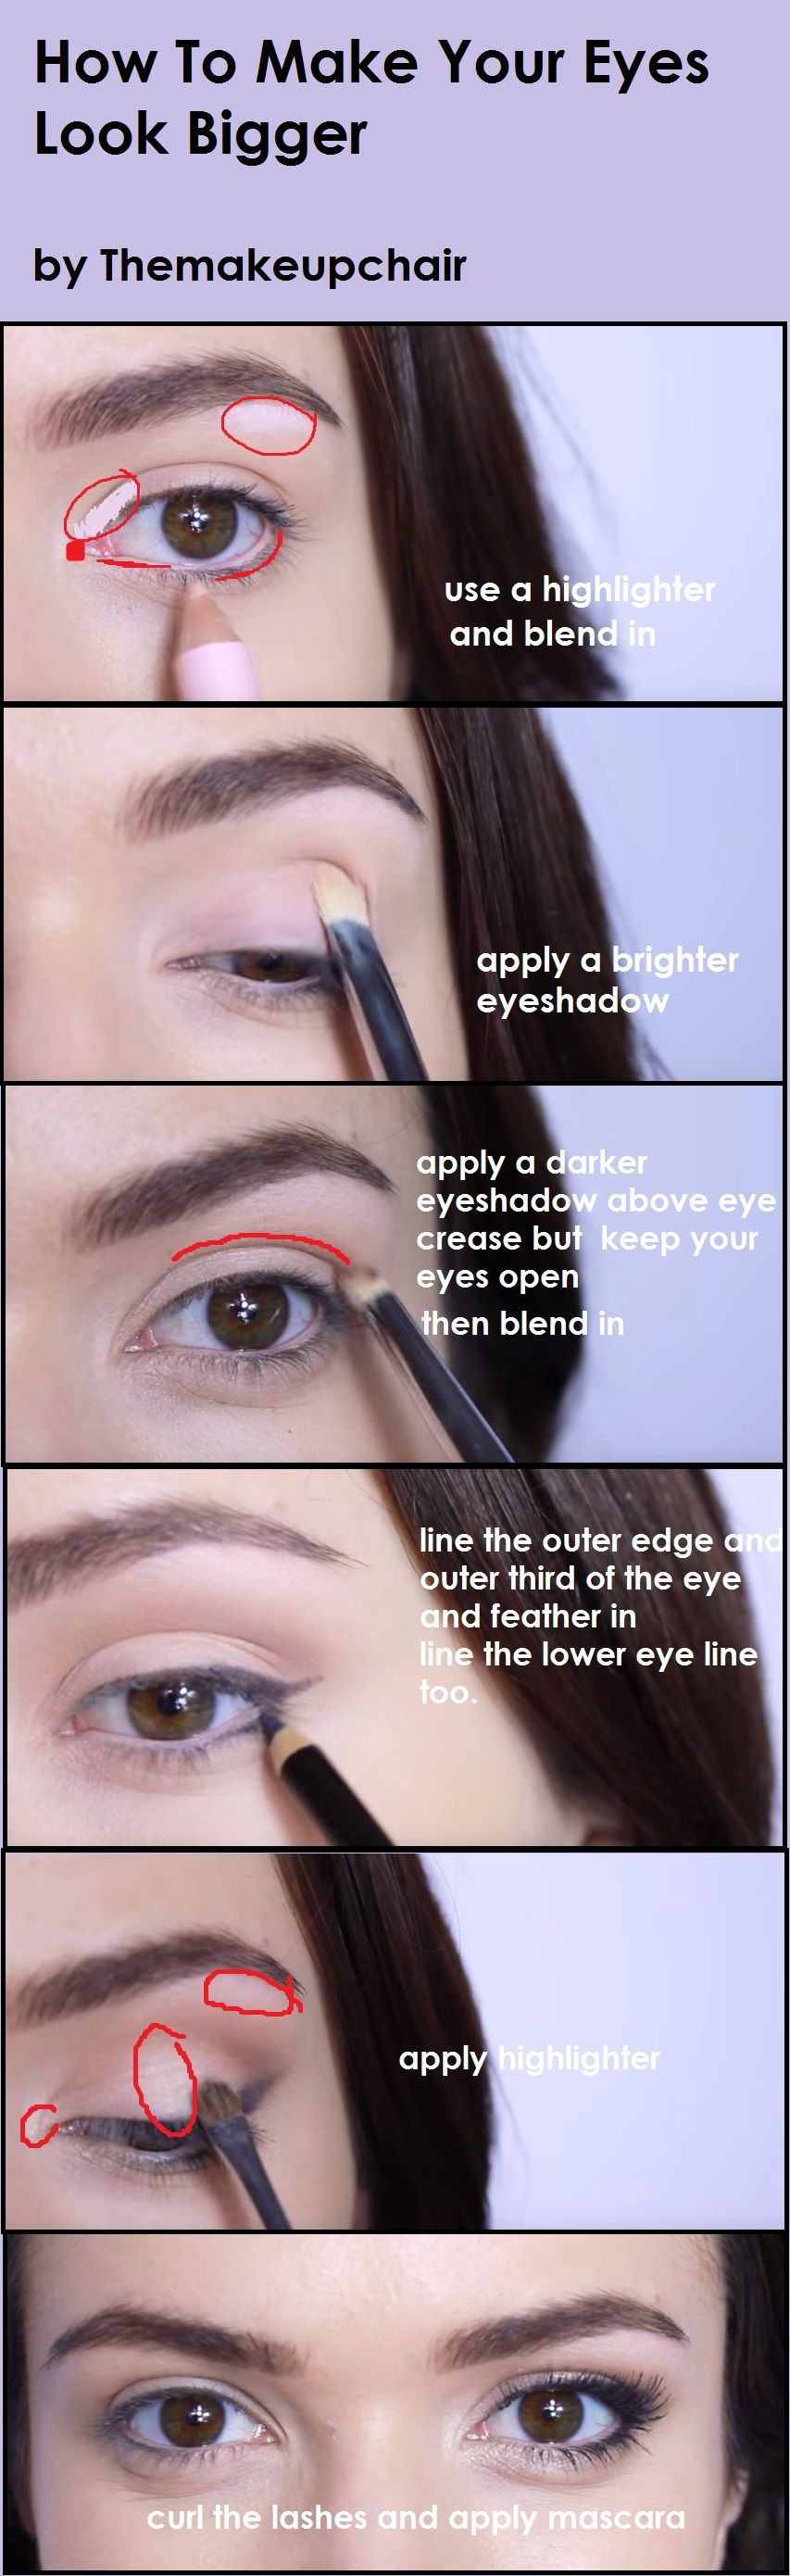 How To Make Your Eyes Look Bigger Self Care Tips Pinterest Eye